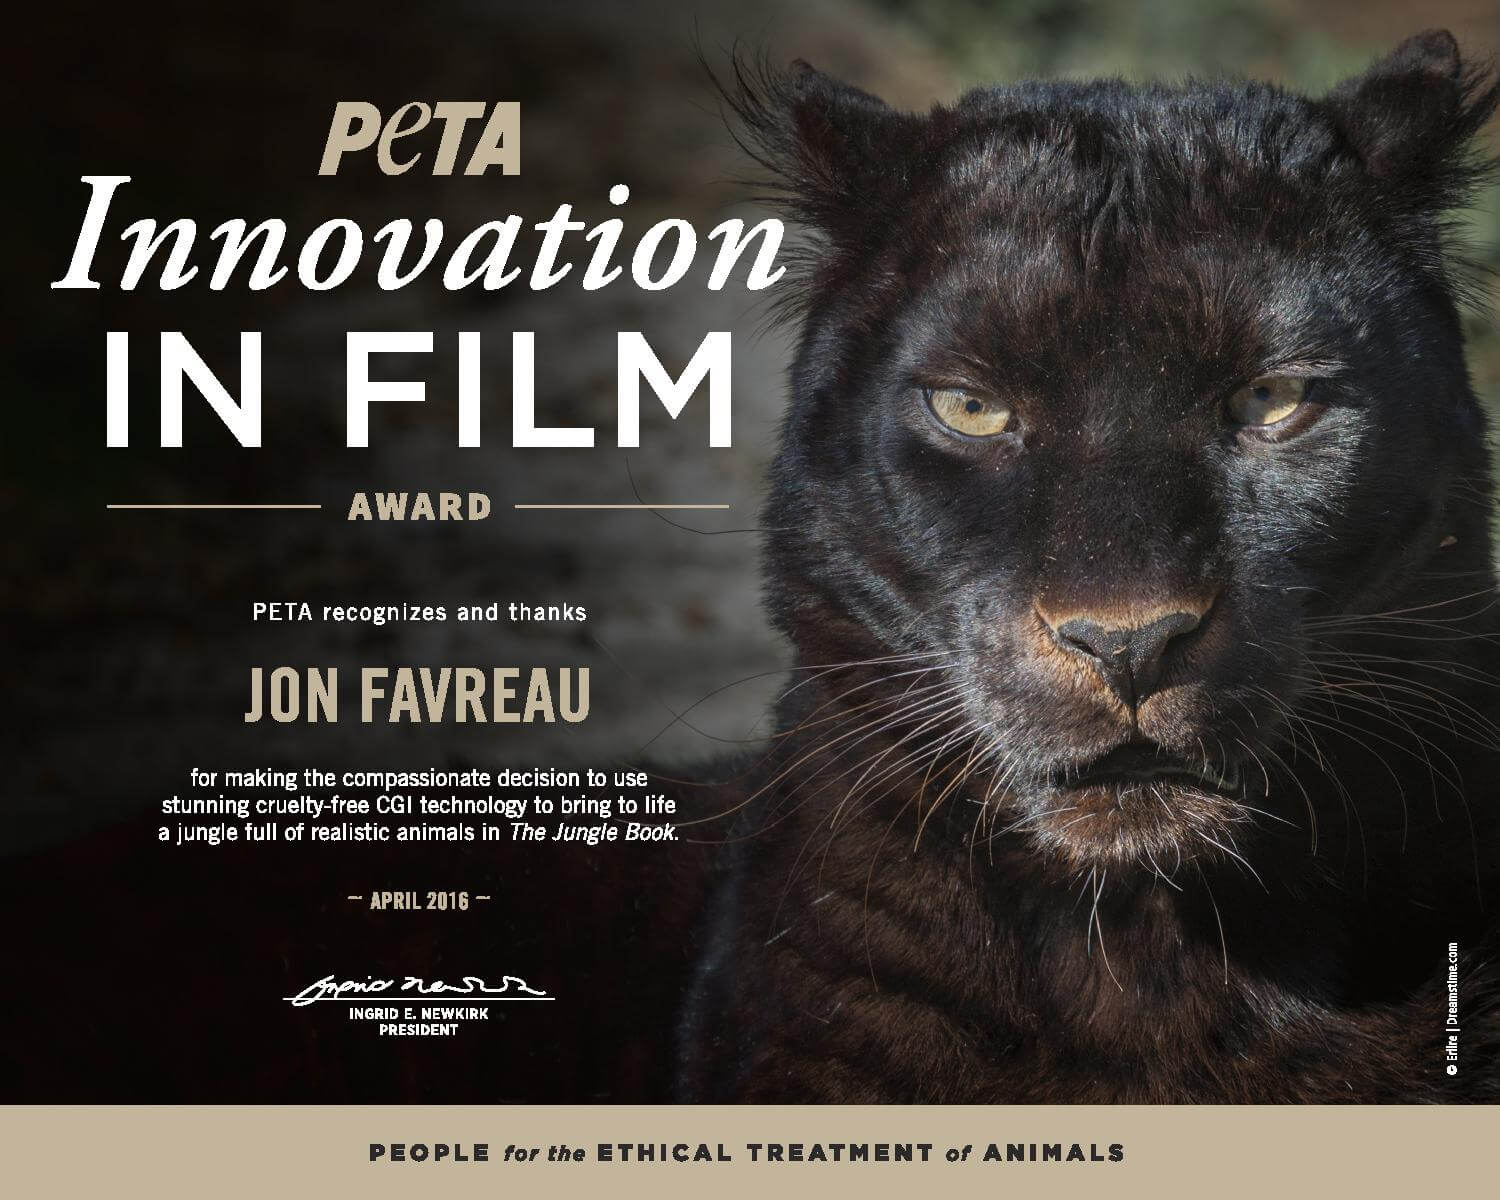 Innovation in Film_Jon Favreau_The Jungle Book_8x10_300-page-001